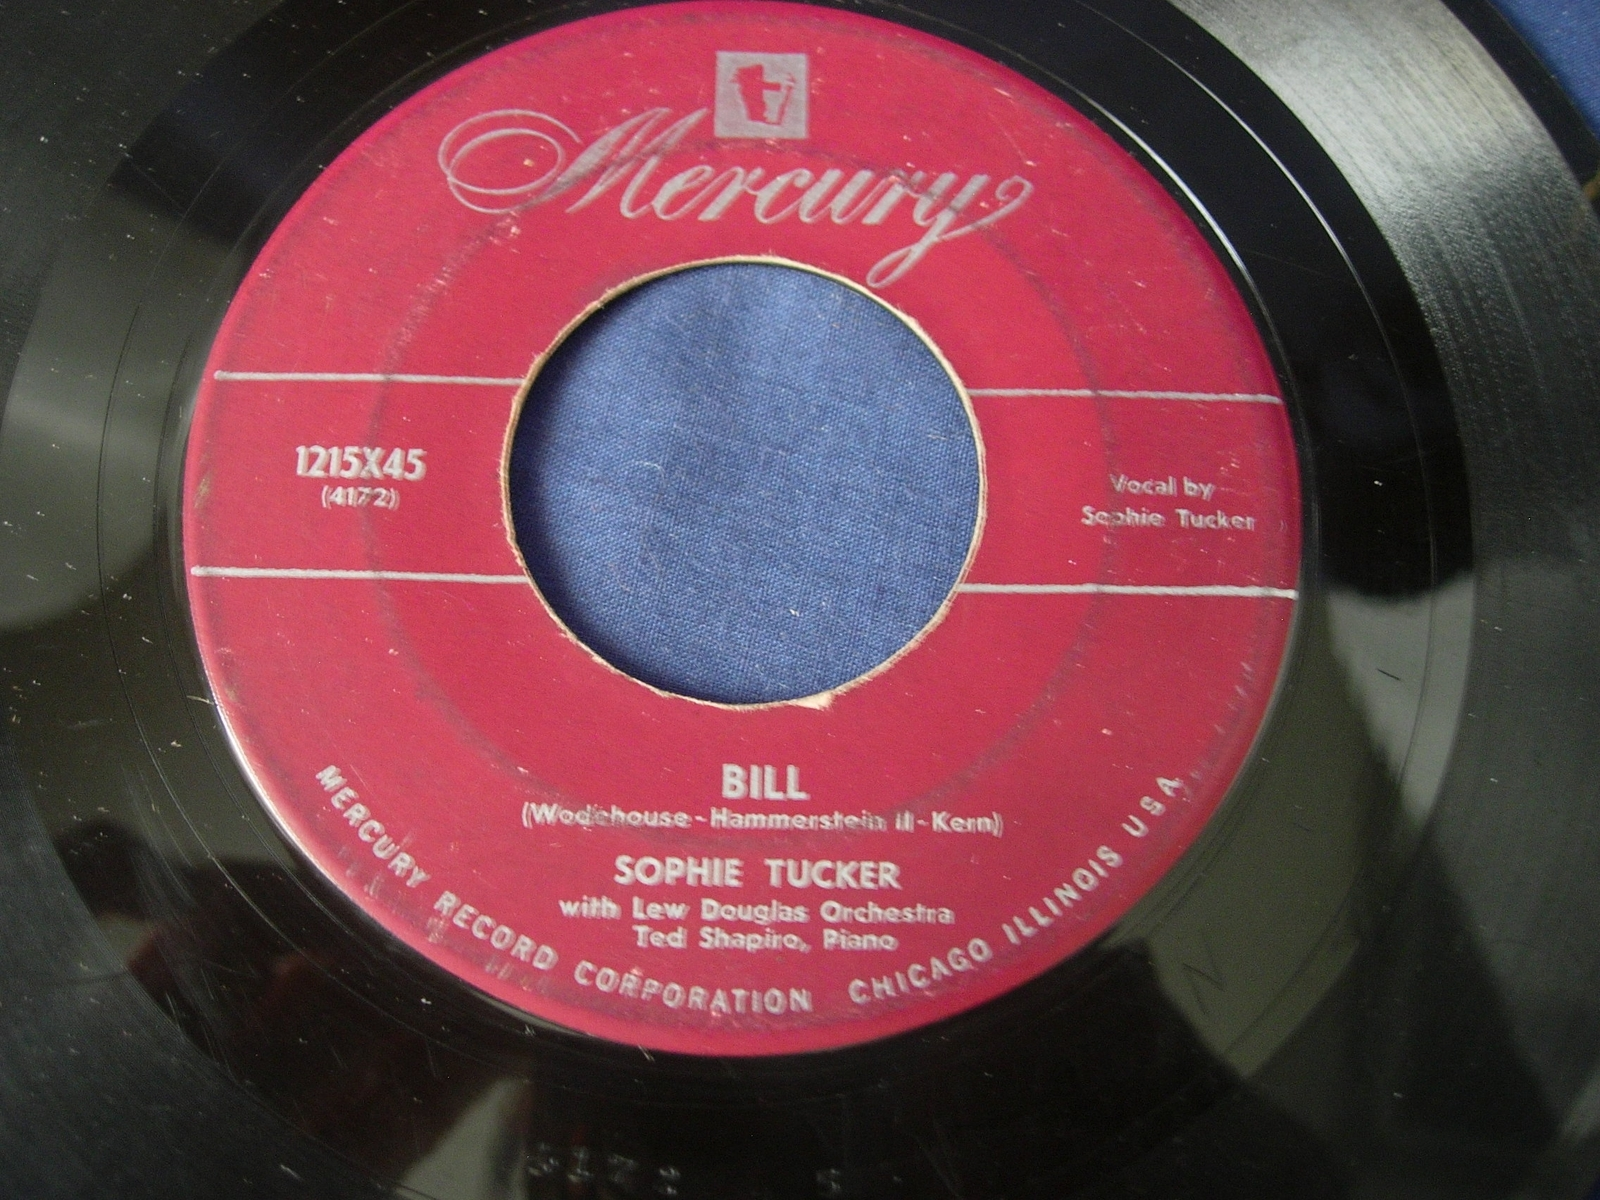 Sophie Tucker - Life Upon the Wicked Stage / Bill - Mercury Records 1215X45